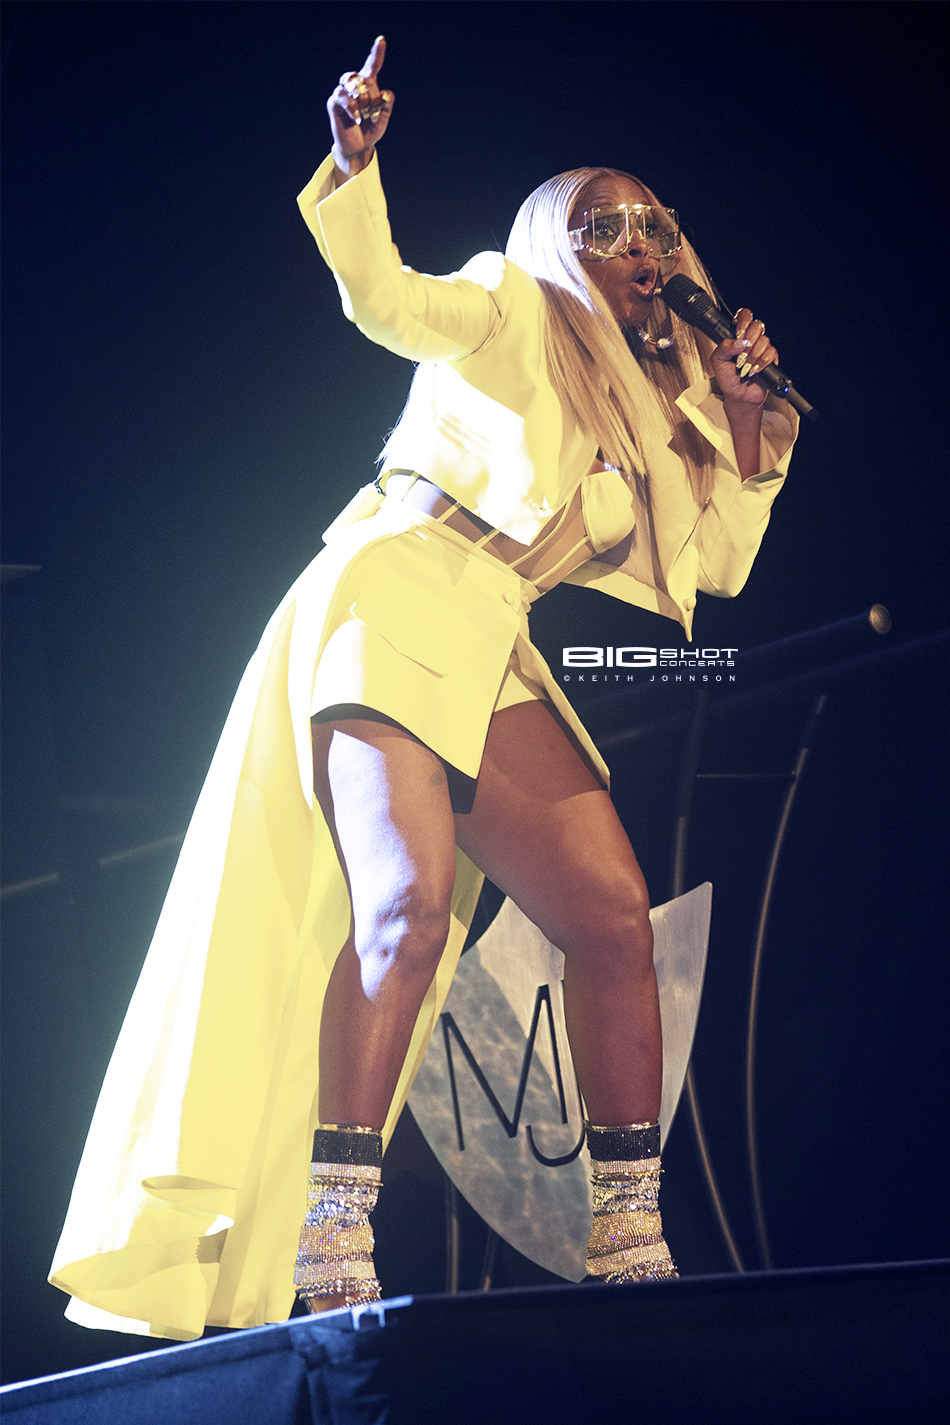 Mary J. Blige and Nas Royalty Tour - West Palm Beach, Florida